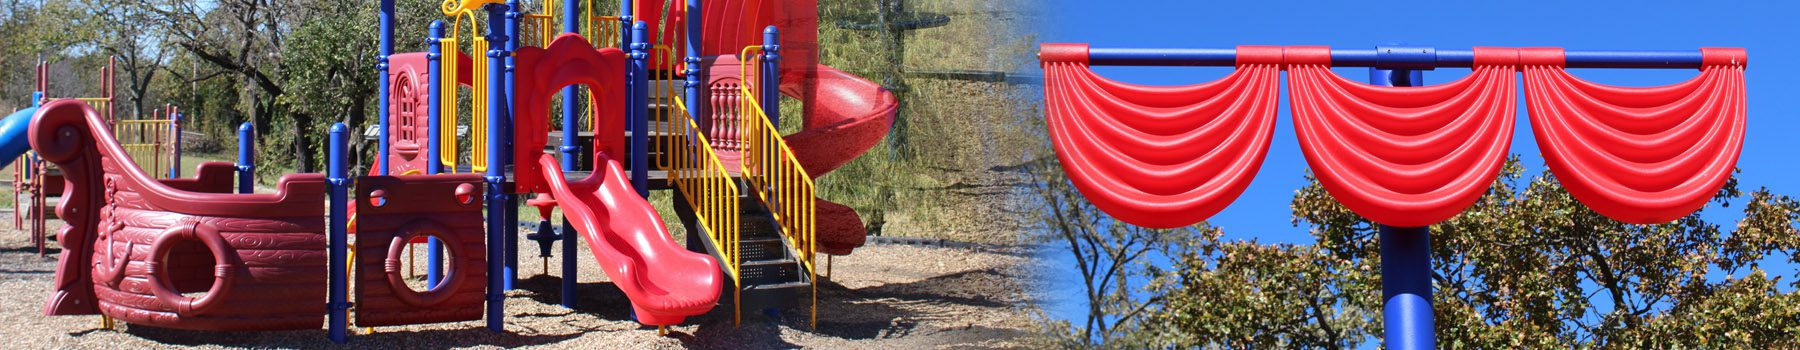 Commercial Playground Maintenance